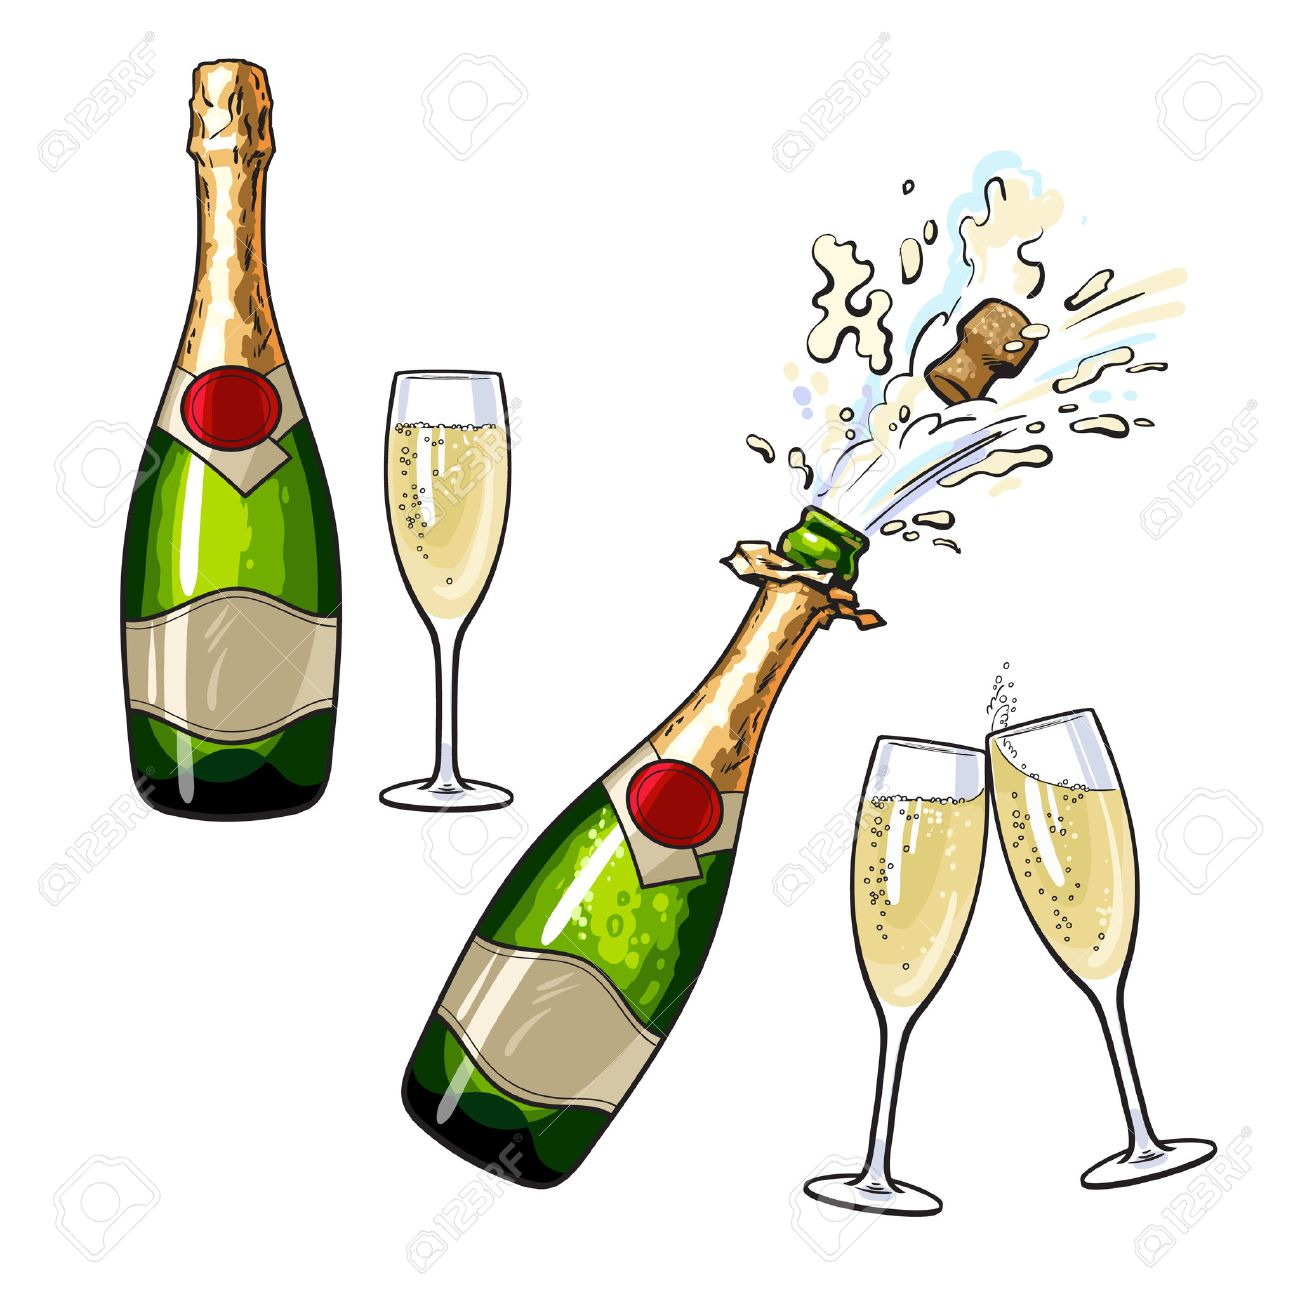 champagne bottle and glasses set of cartoon vector illustrations